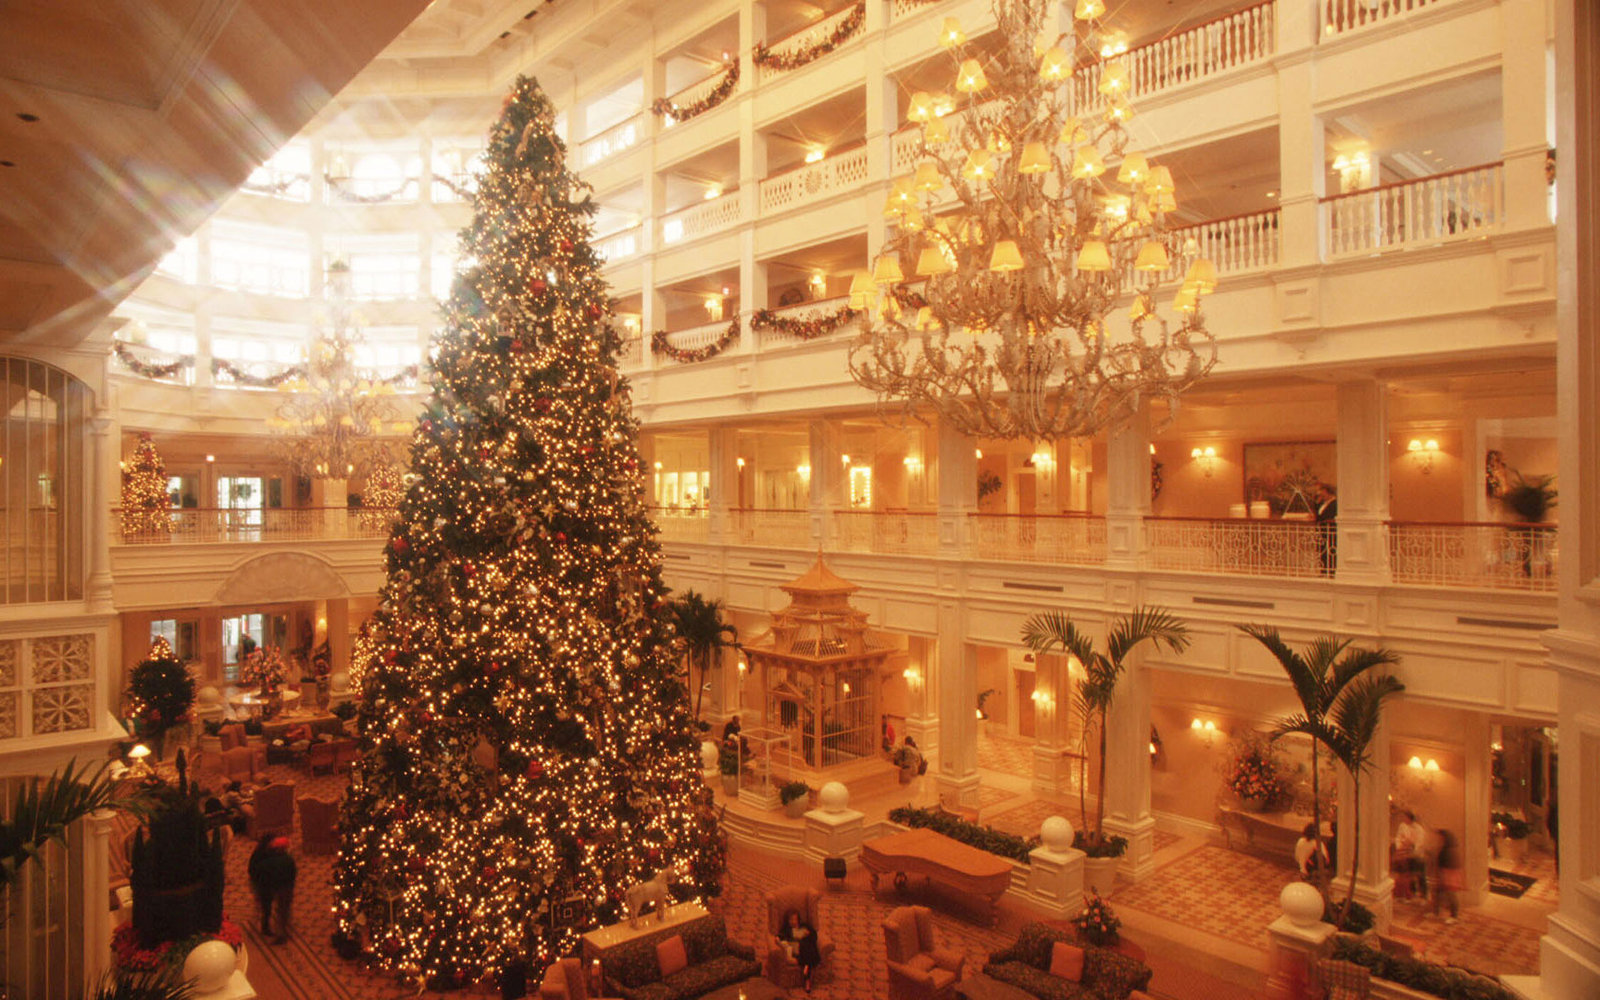 disney christmas travel tips - When Is Disney Decorated For Christmas